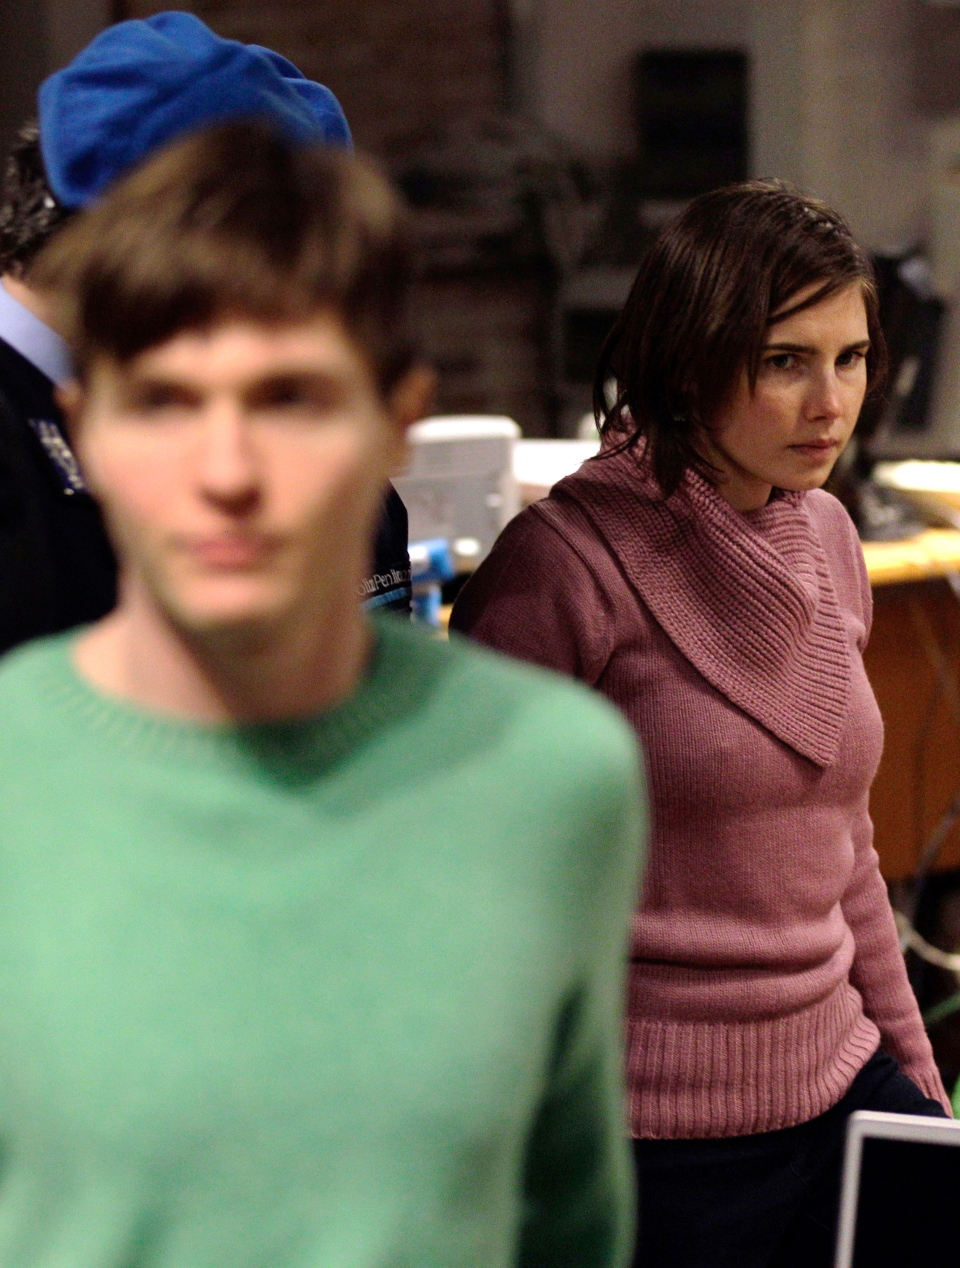 U.S. student Amanda Knox, right, walks past Raffaele Sollecito, as she arrives after a break to attend a hearing in her appeals trial, at Perugia's courthouse, Italy in this Saturday, Dec. 18, 2010 file photo.  (AP / Alessandra Tarantino)